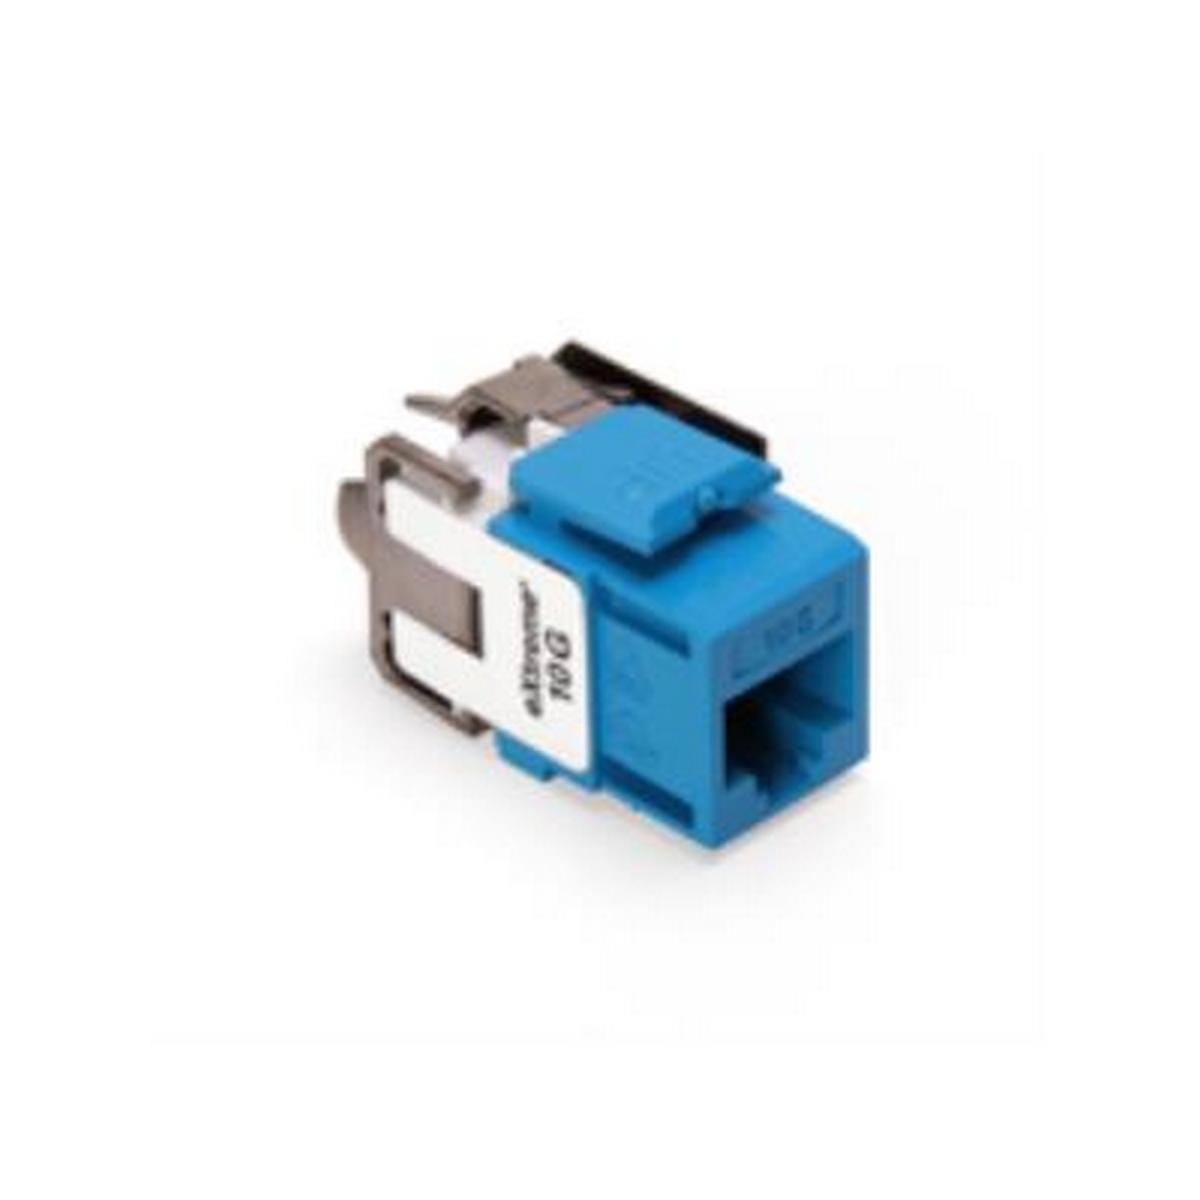 CAT 6A eXtreme 10G QuickPort Connector, blue